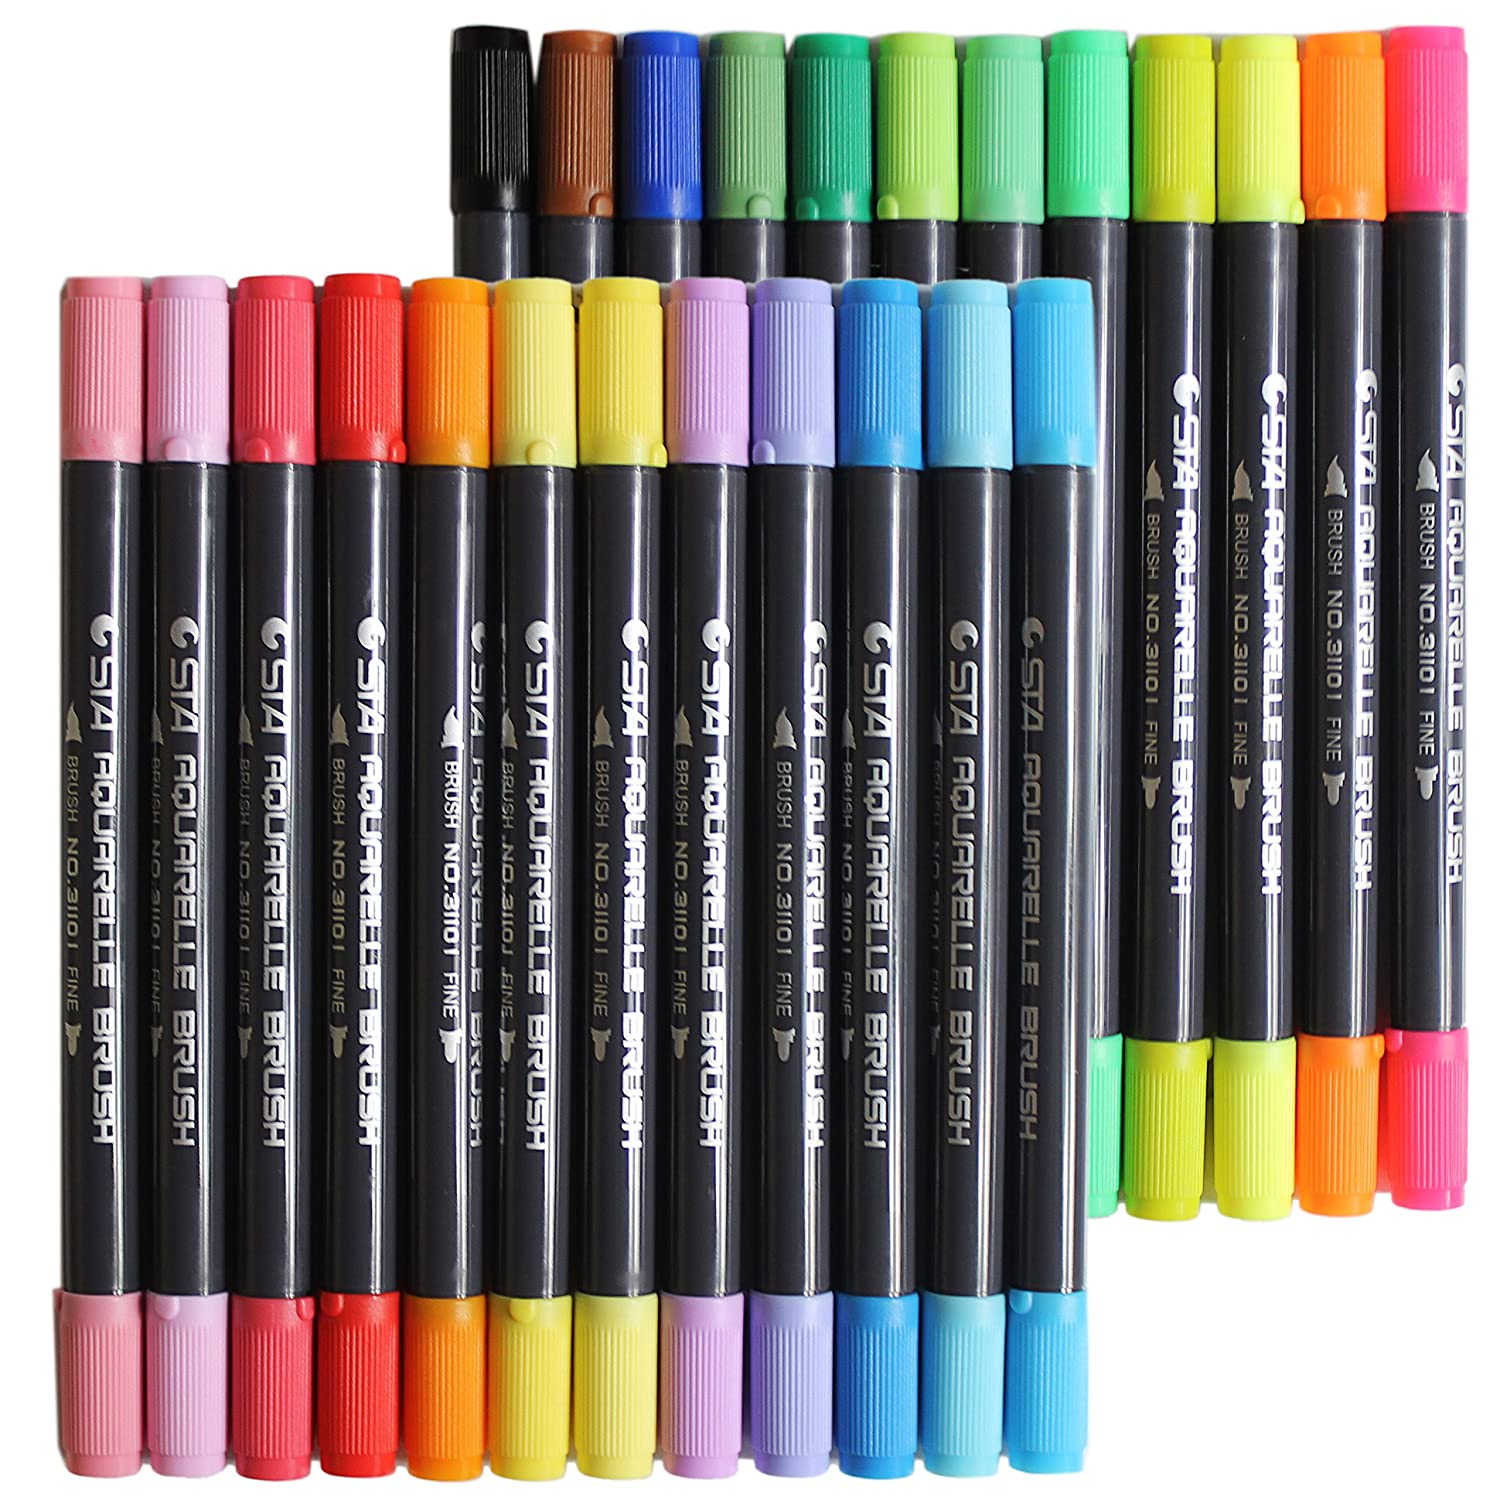 Huhuhero Art Soft Brush Pen Markers Supplies for Adult Coloring Books Dual Tip